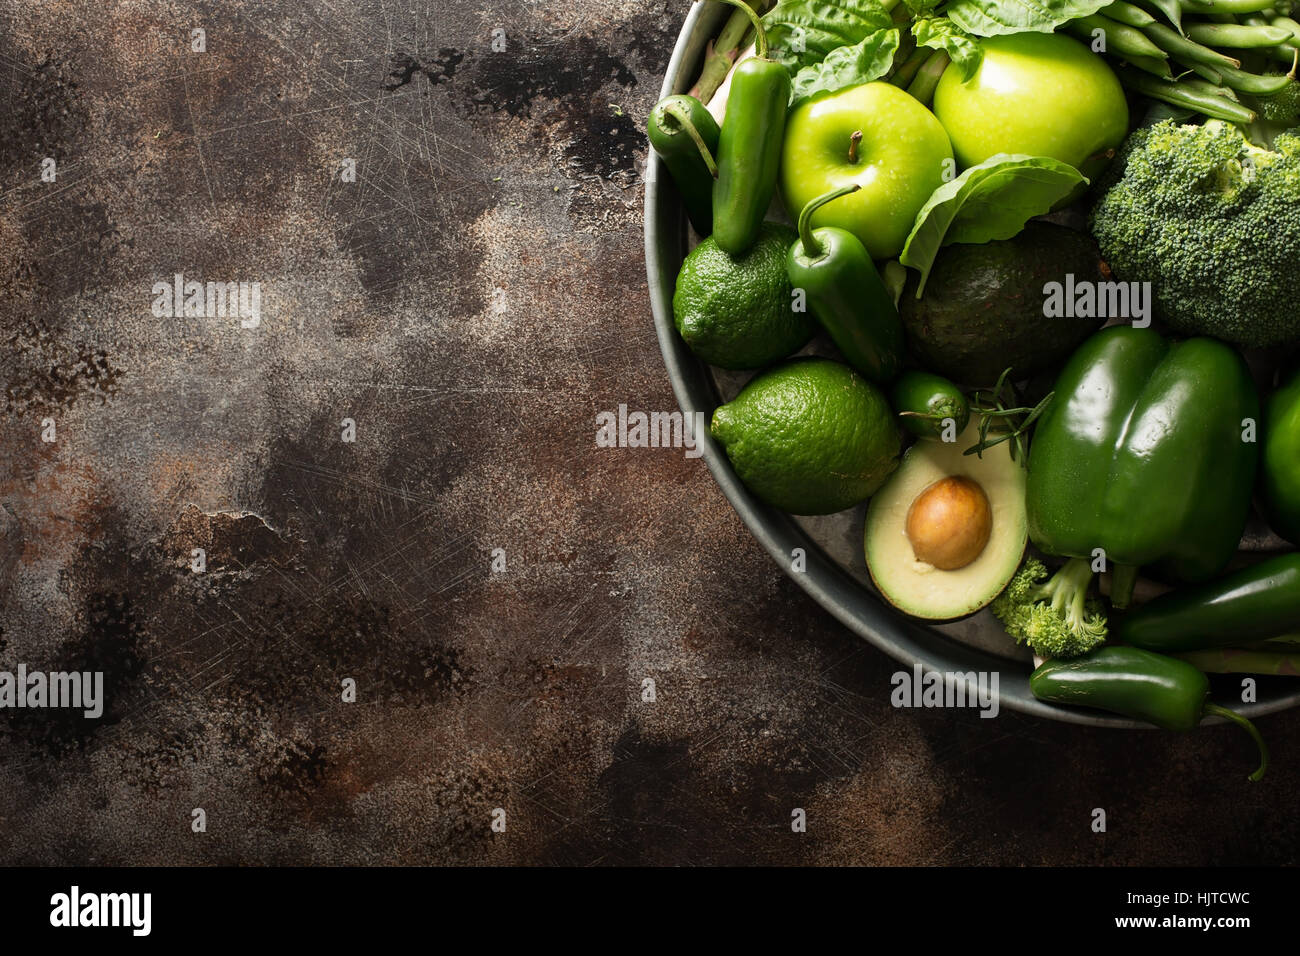 Variety of green vegetables and fruits - Stock Image